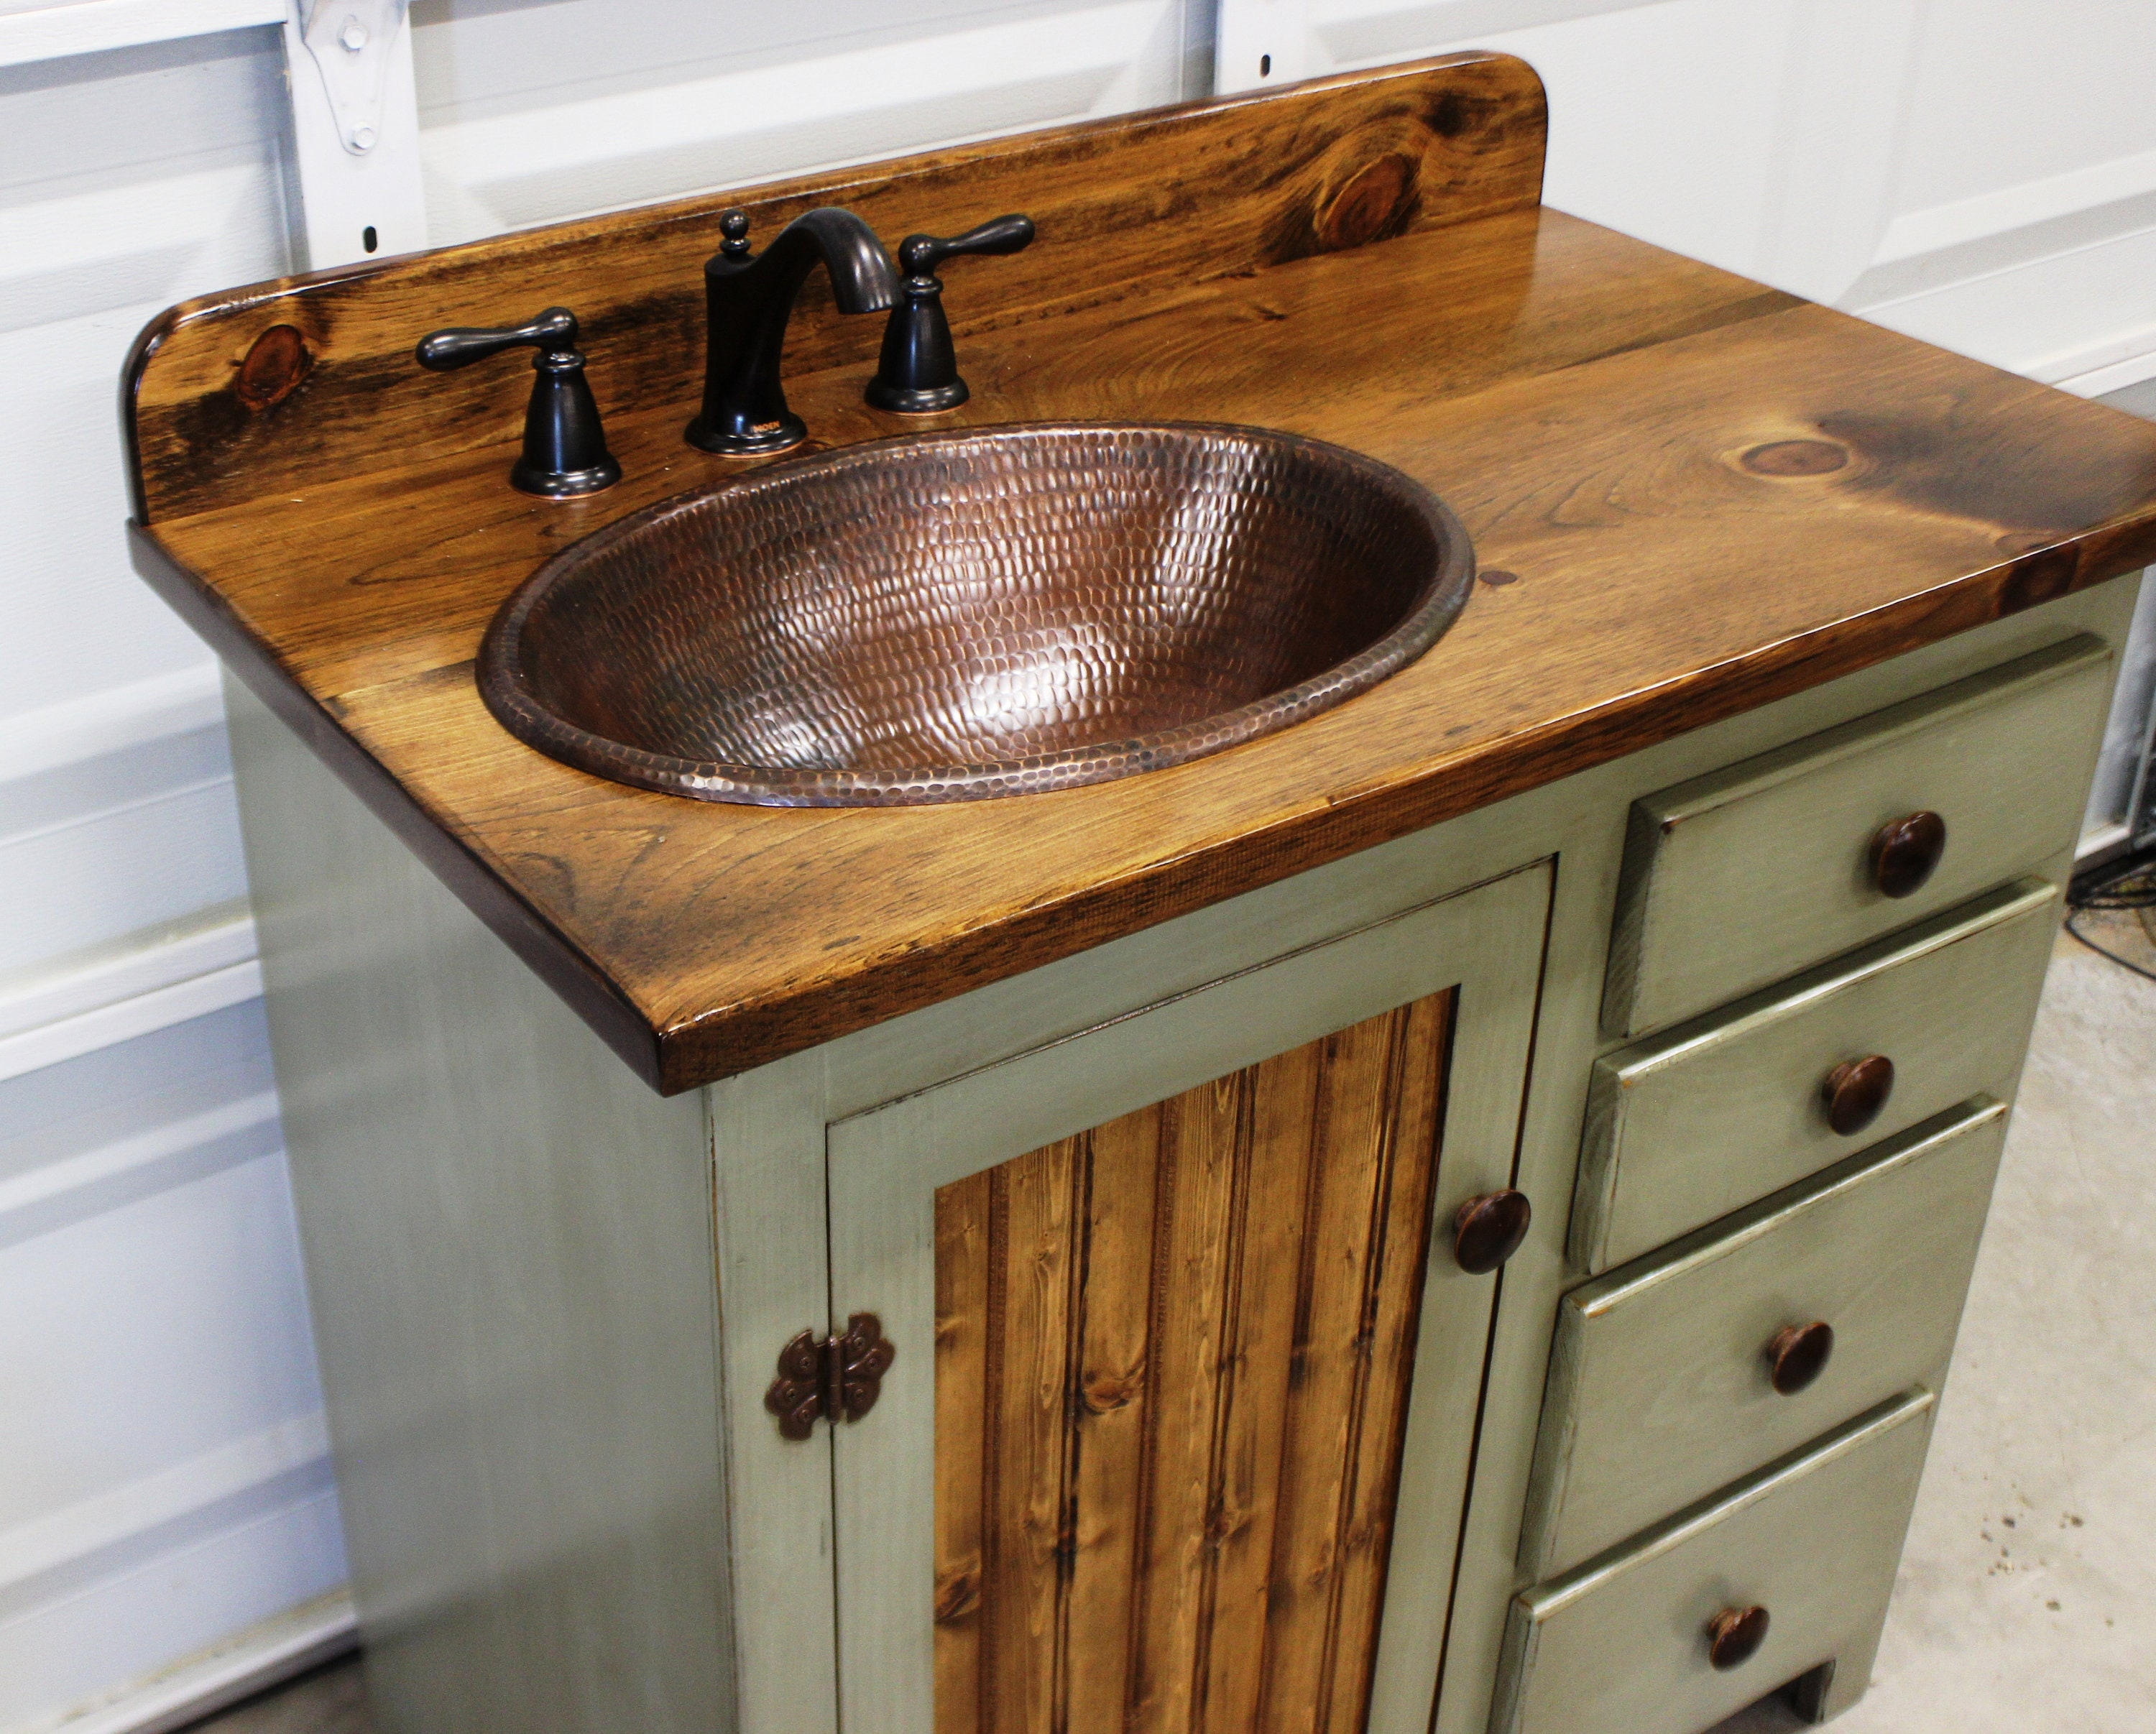 Bathroom Vanity 36 Rustic Farmhouse Bathroom Vanity Sage Green Bathroom Vanity W Drawers Rustic Bathroom Vanity Copper Sink